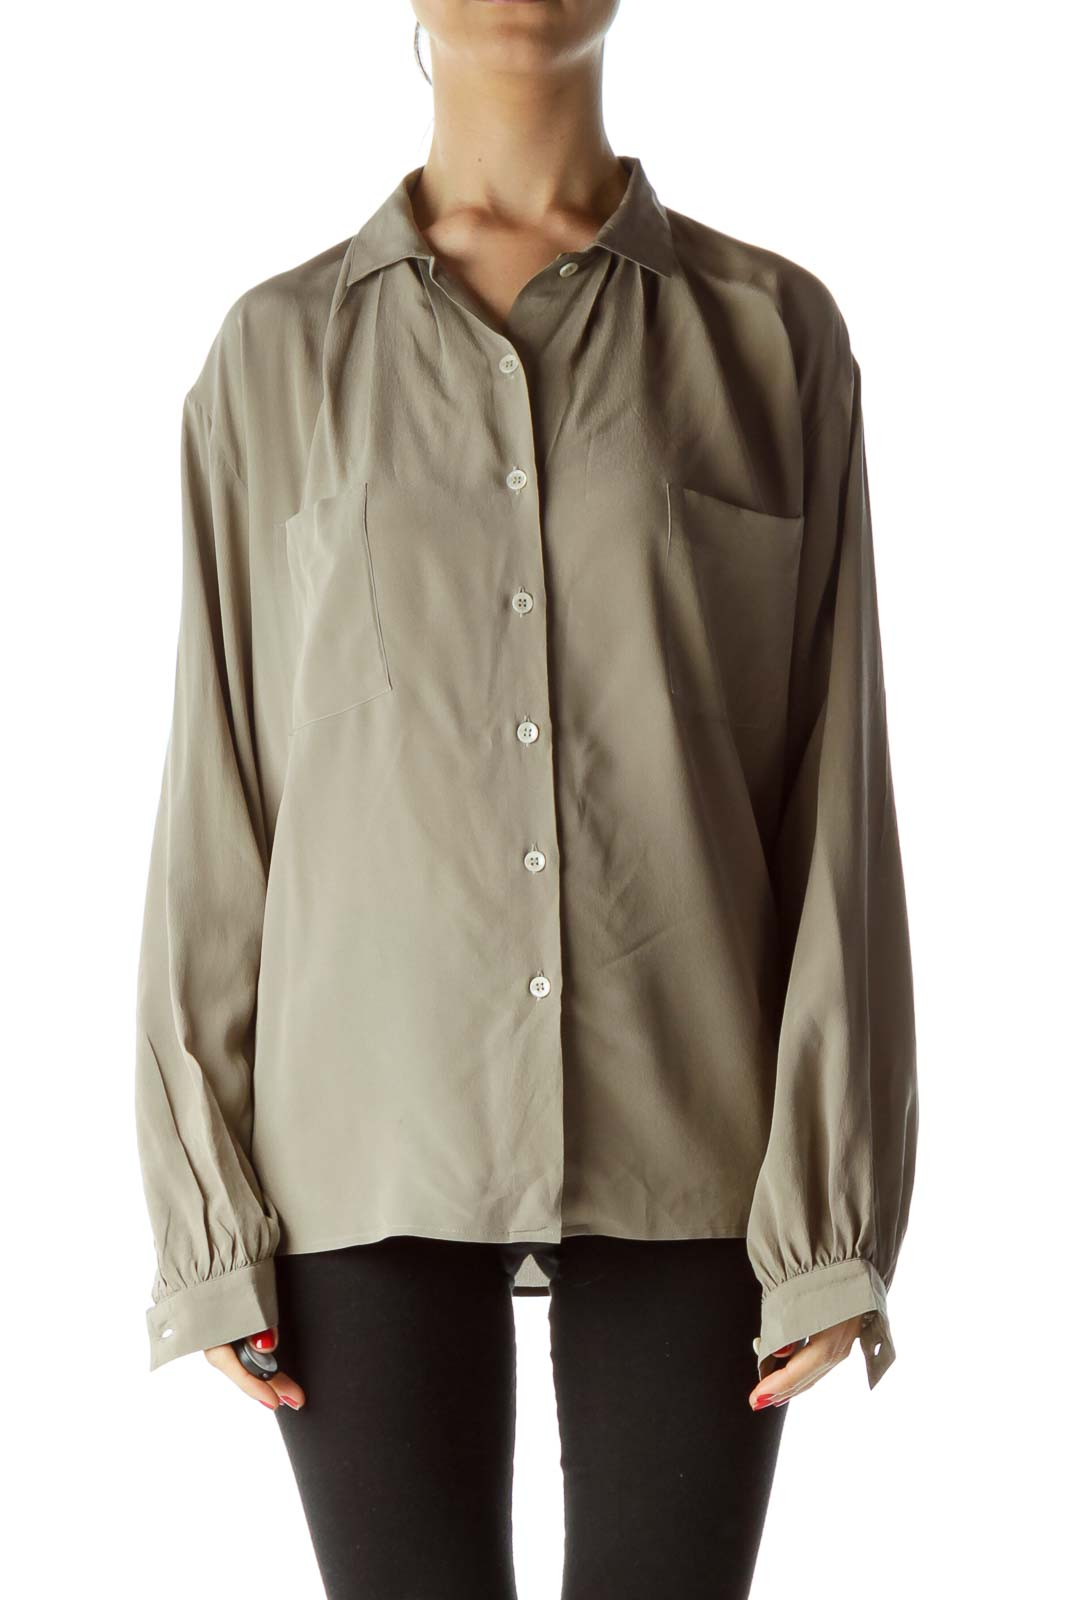 Gray 100% Silk Buttoned Shirt with Pockets Front